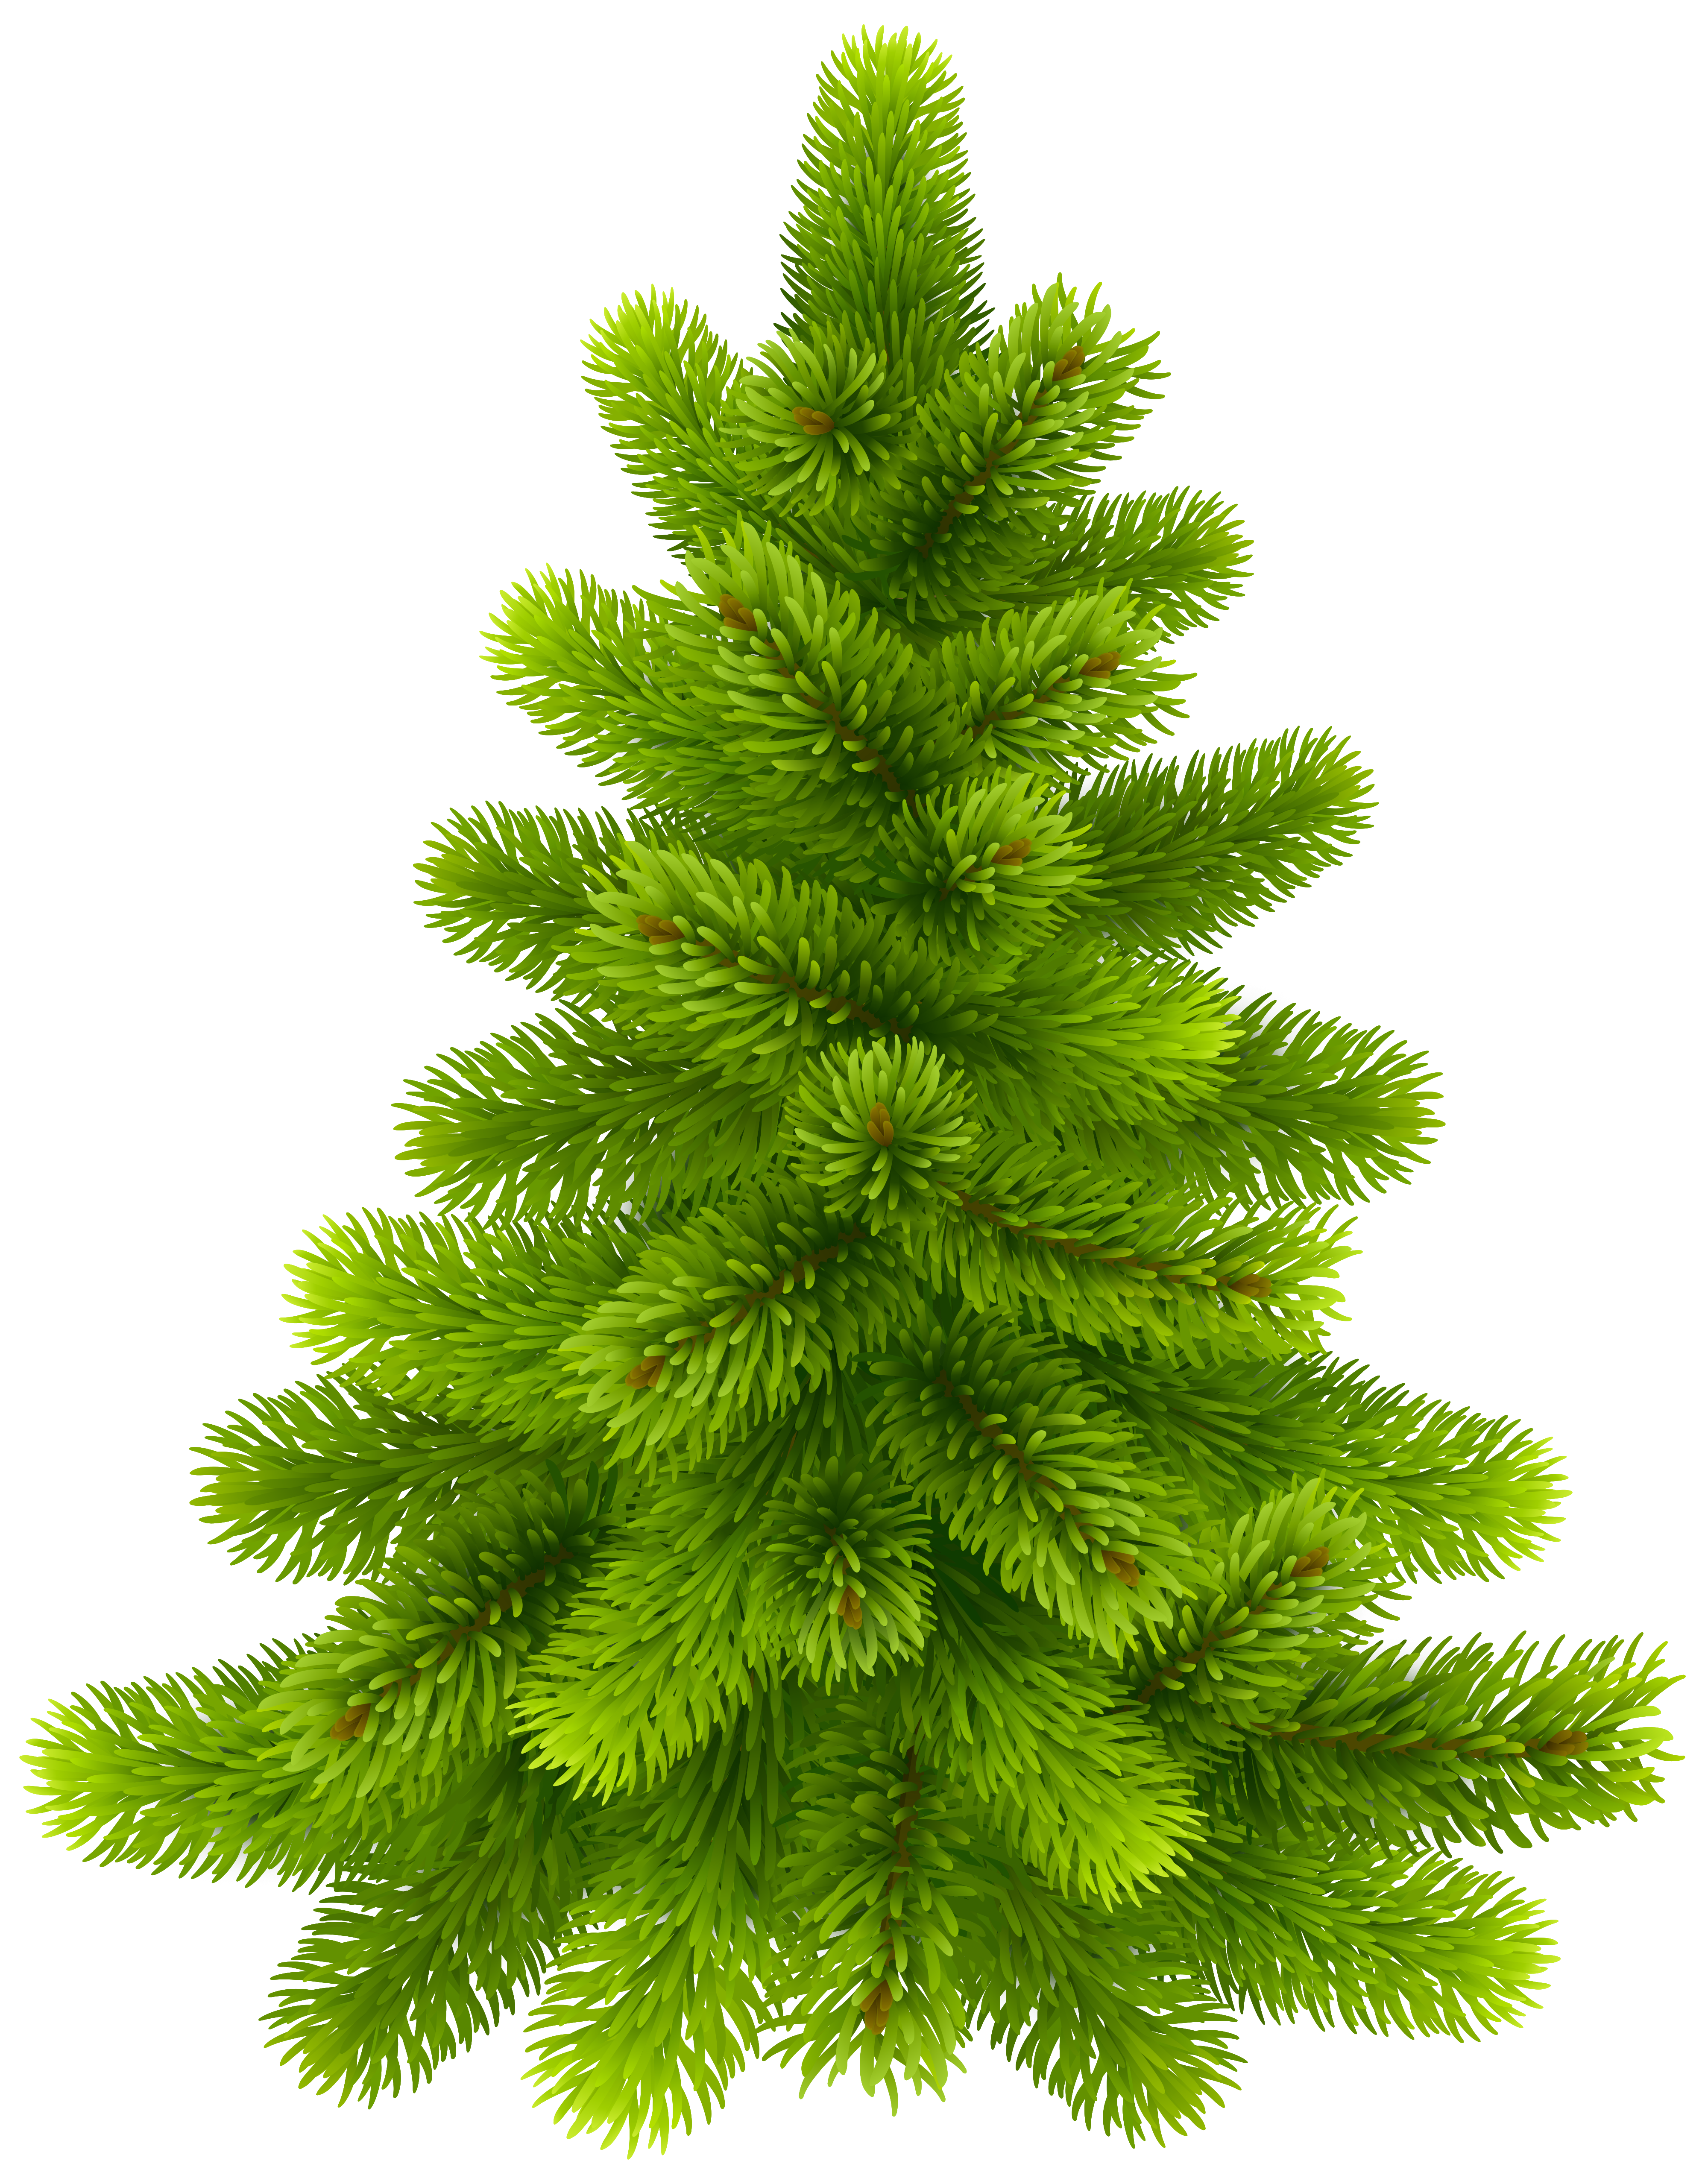 Pine clipart. Tree png clip art